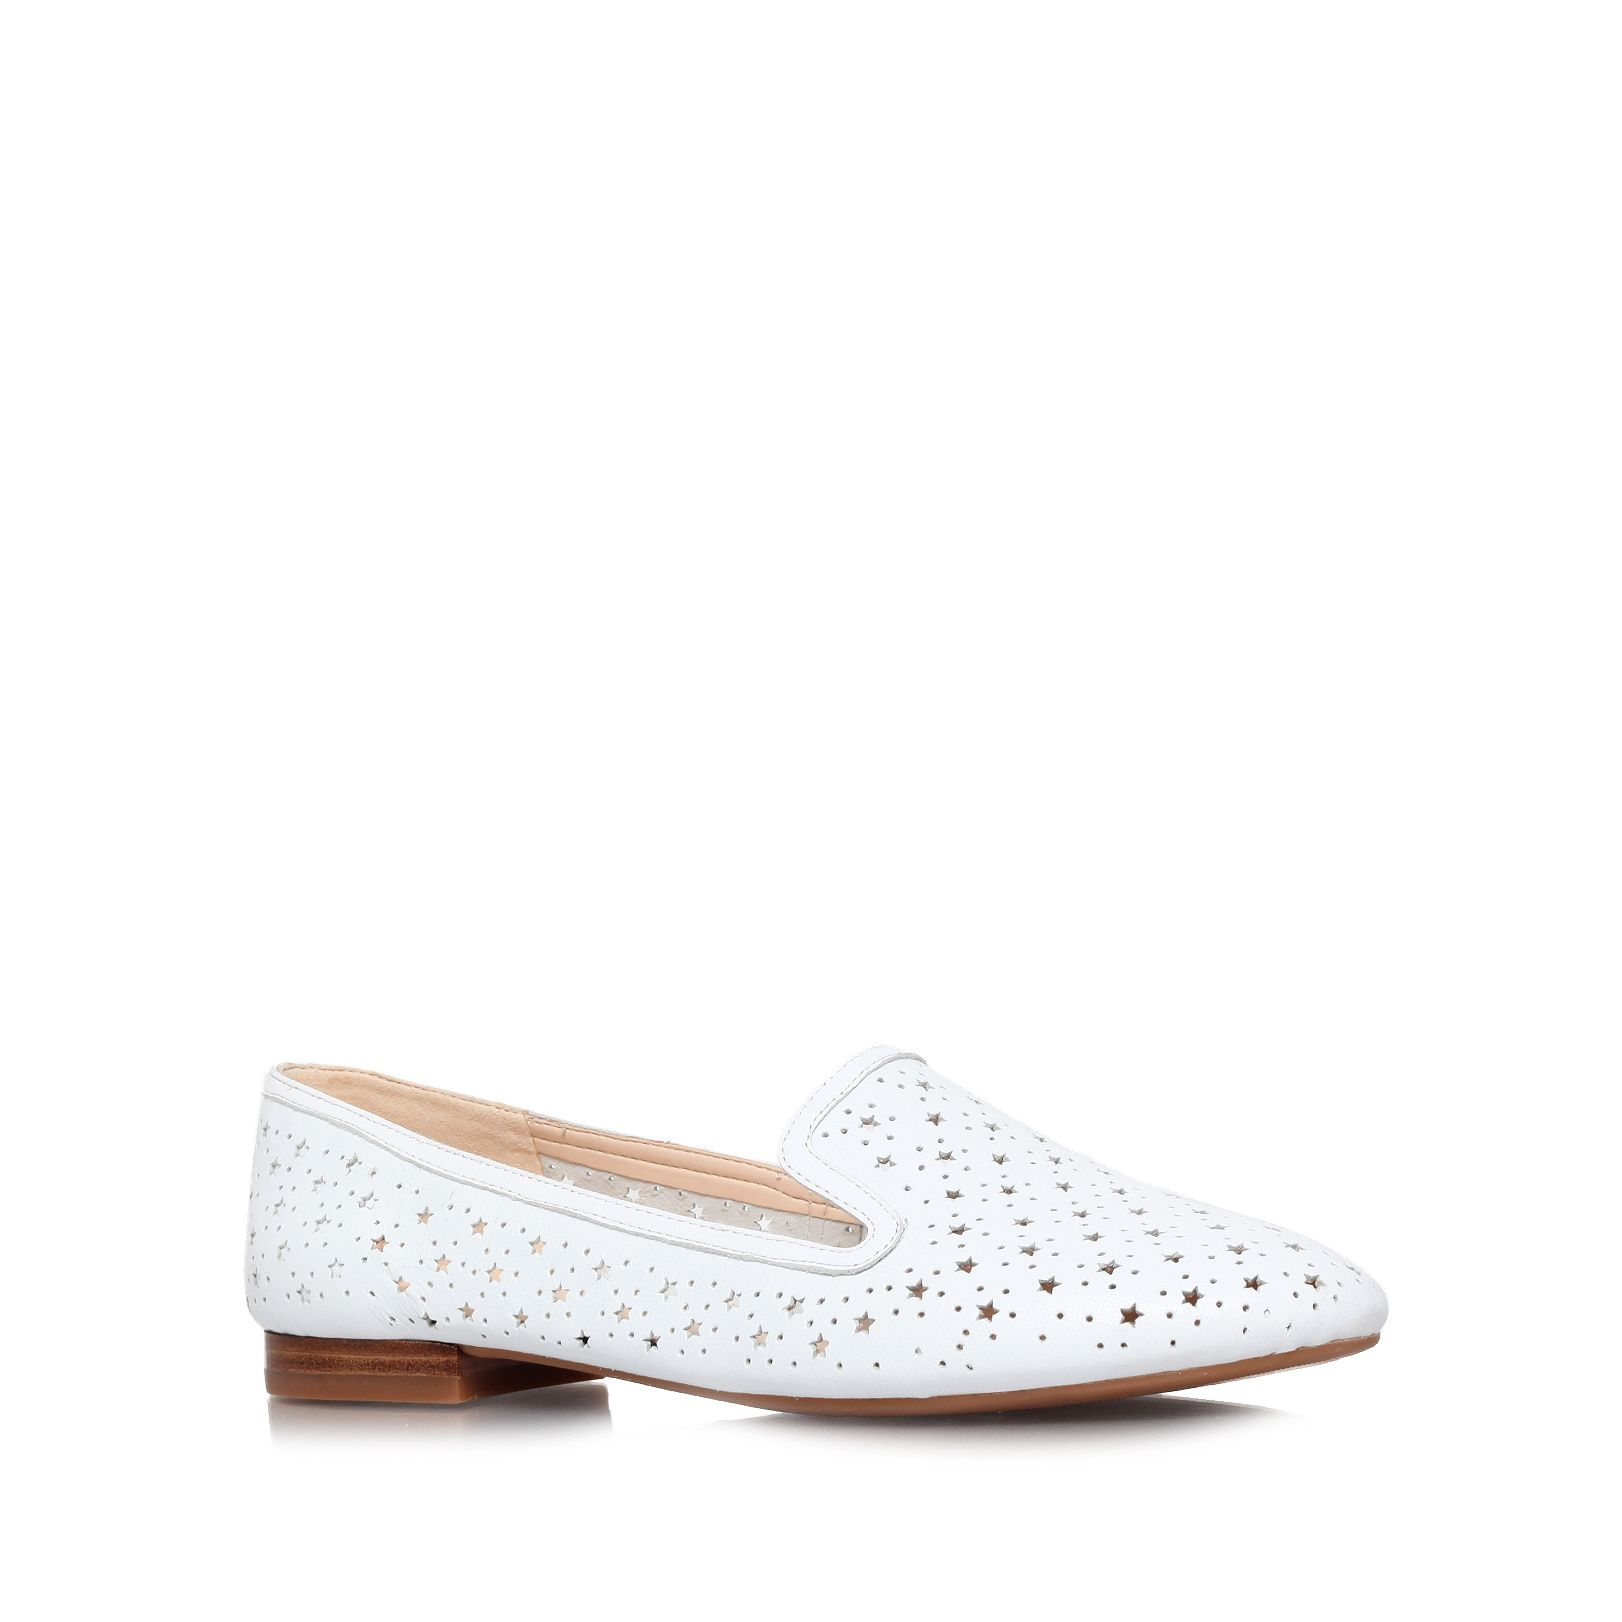 Luella flat slipper shoes